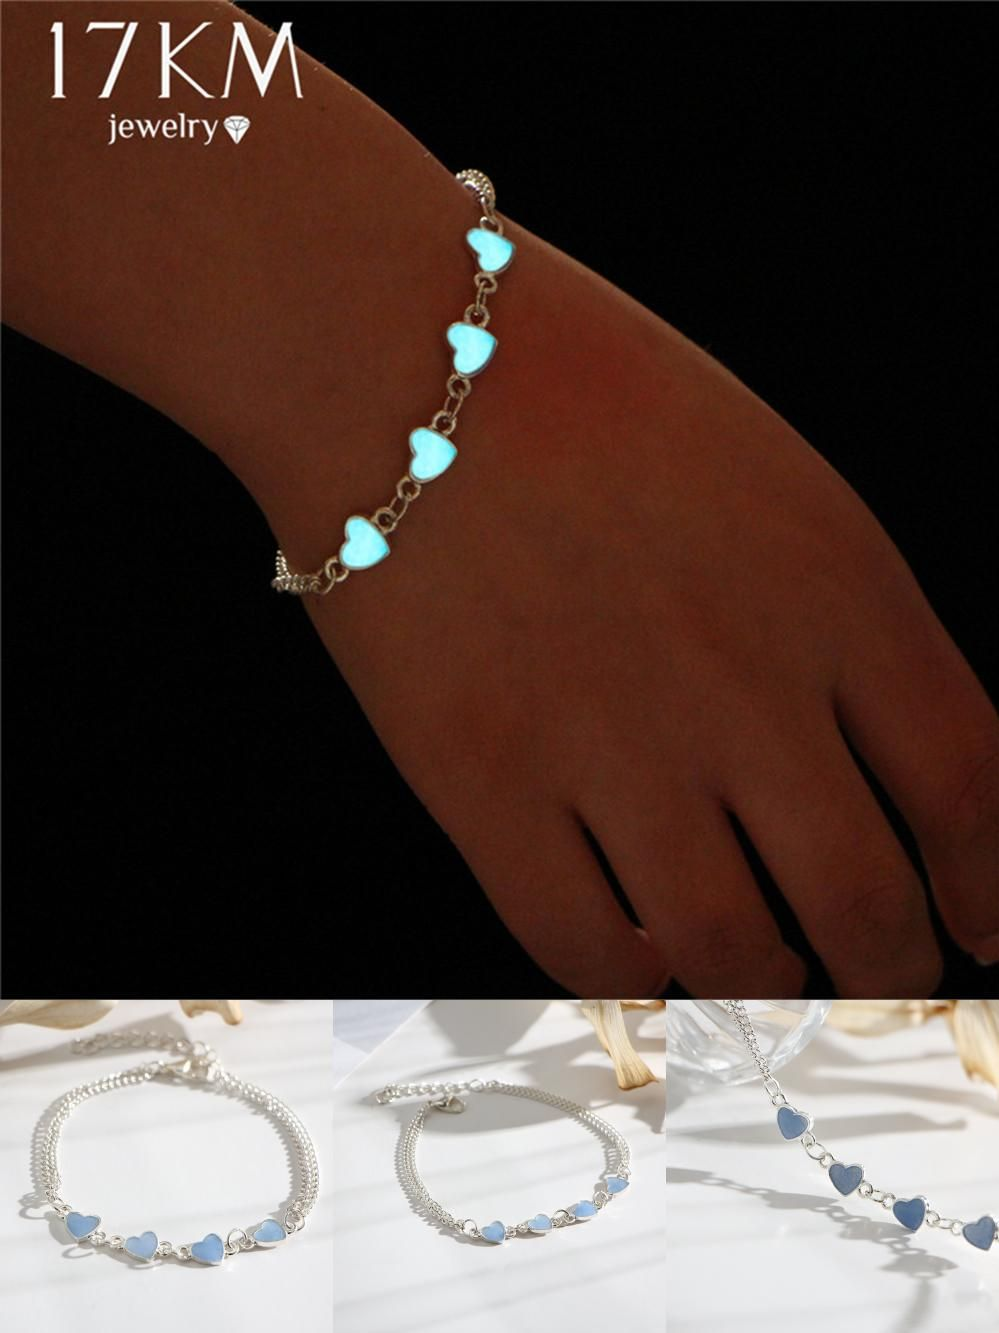 Visit to buy km luminous heart pendant bracelets for women pretty